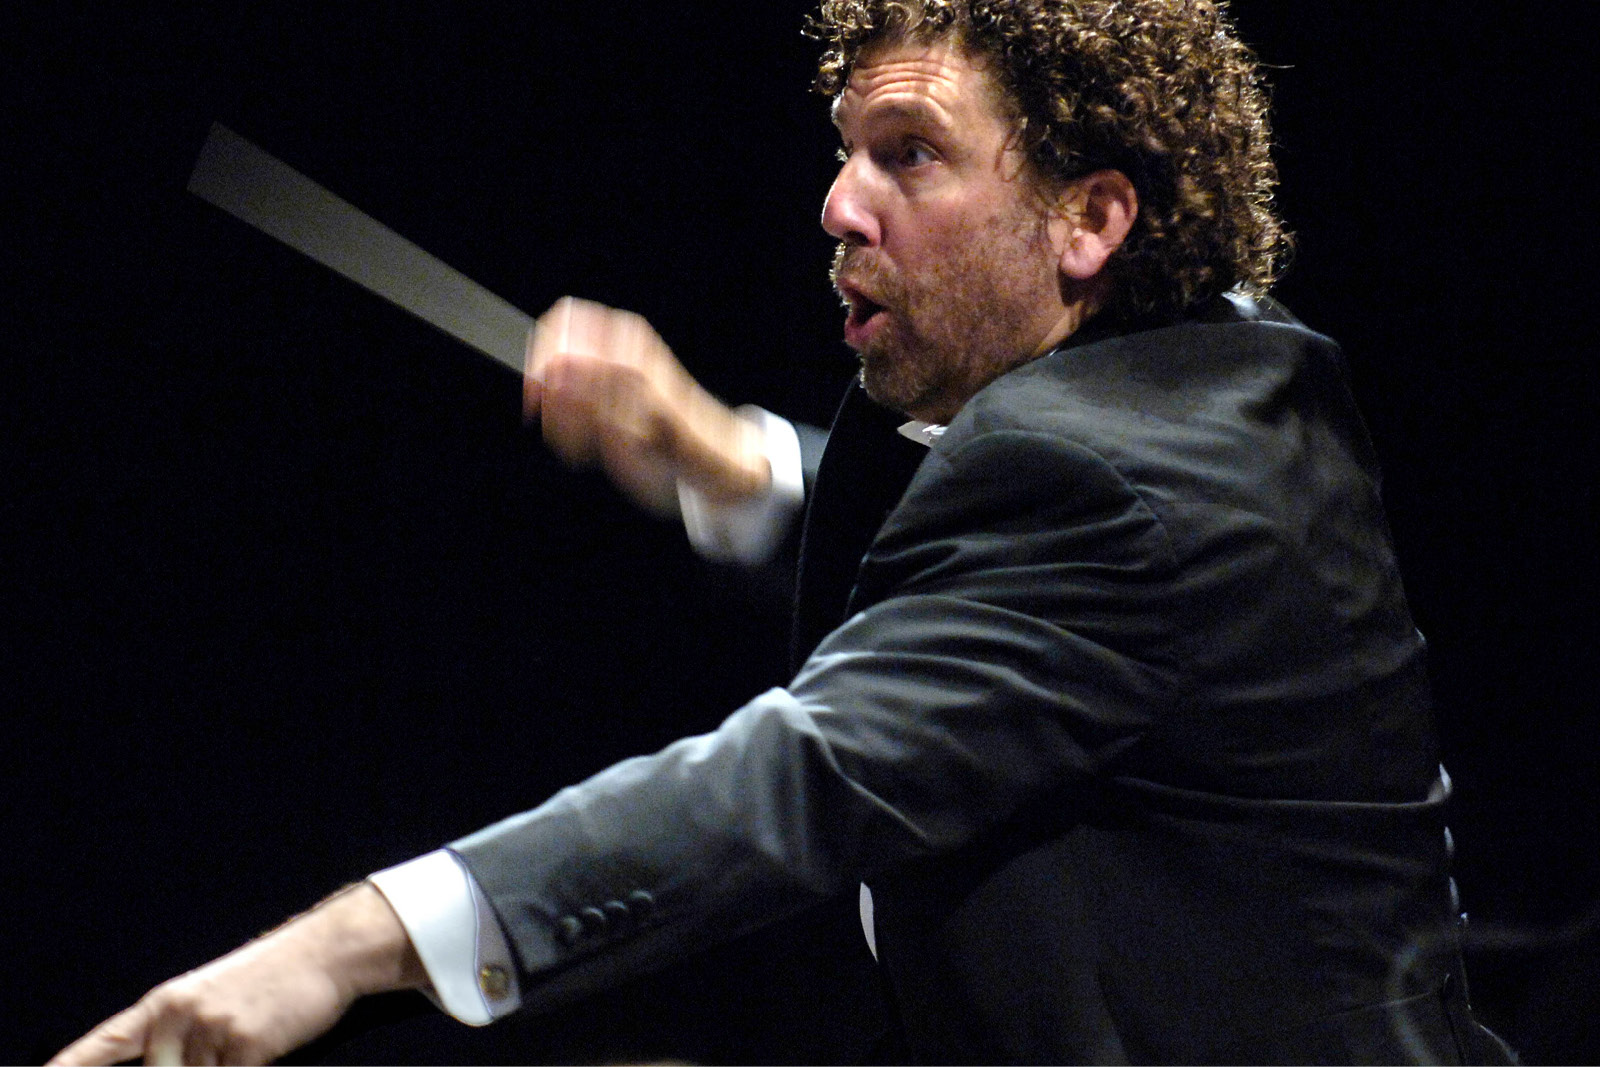 Asher Fisch, West Australian Symphony Orchestra